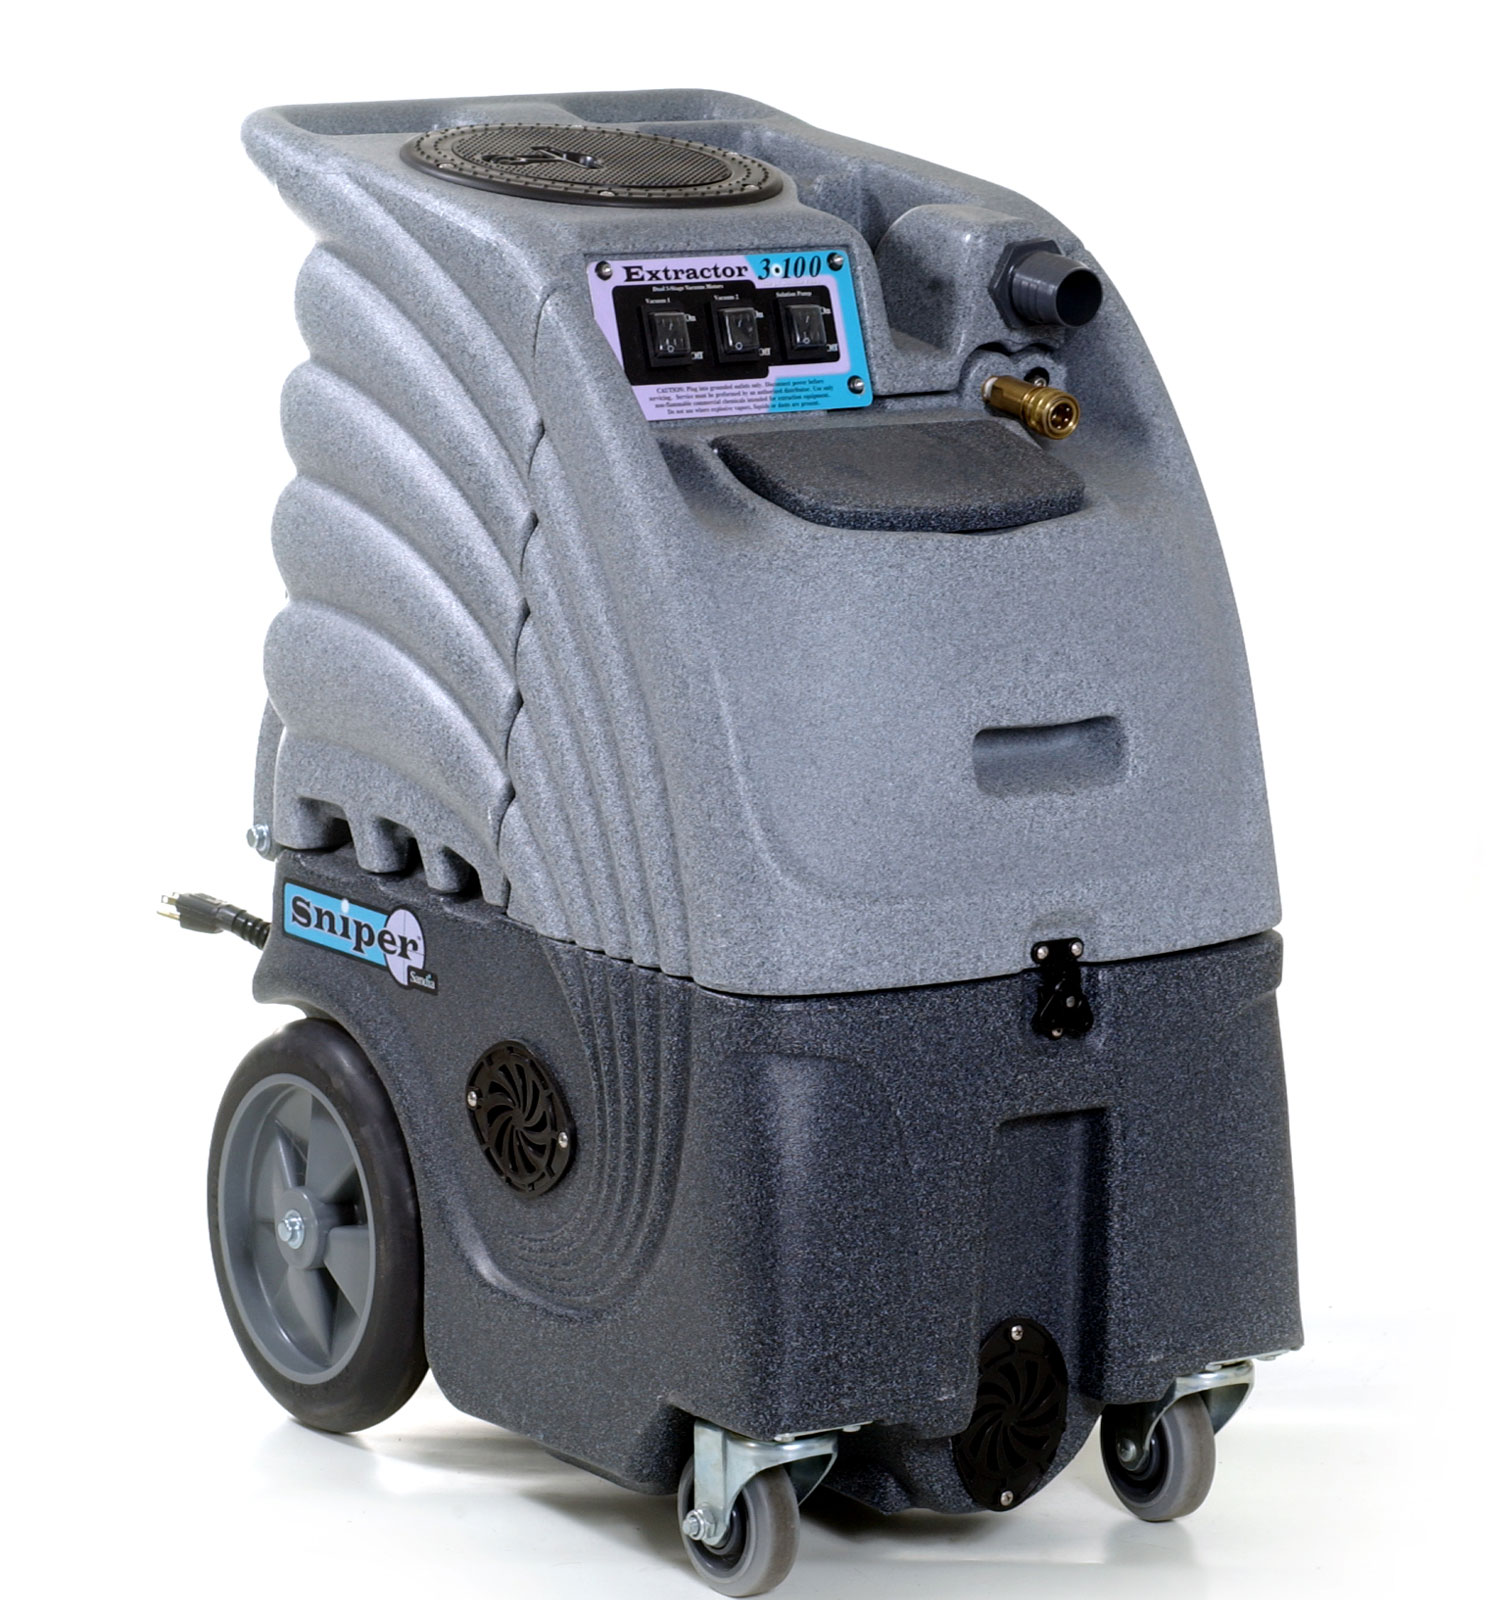 Sandia Sniper 100 PSI Carpet Extractor - 6 Gallon